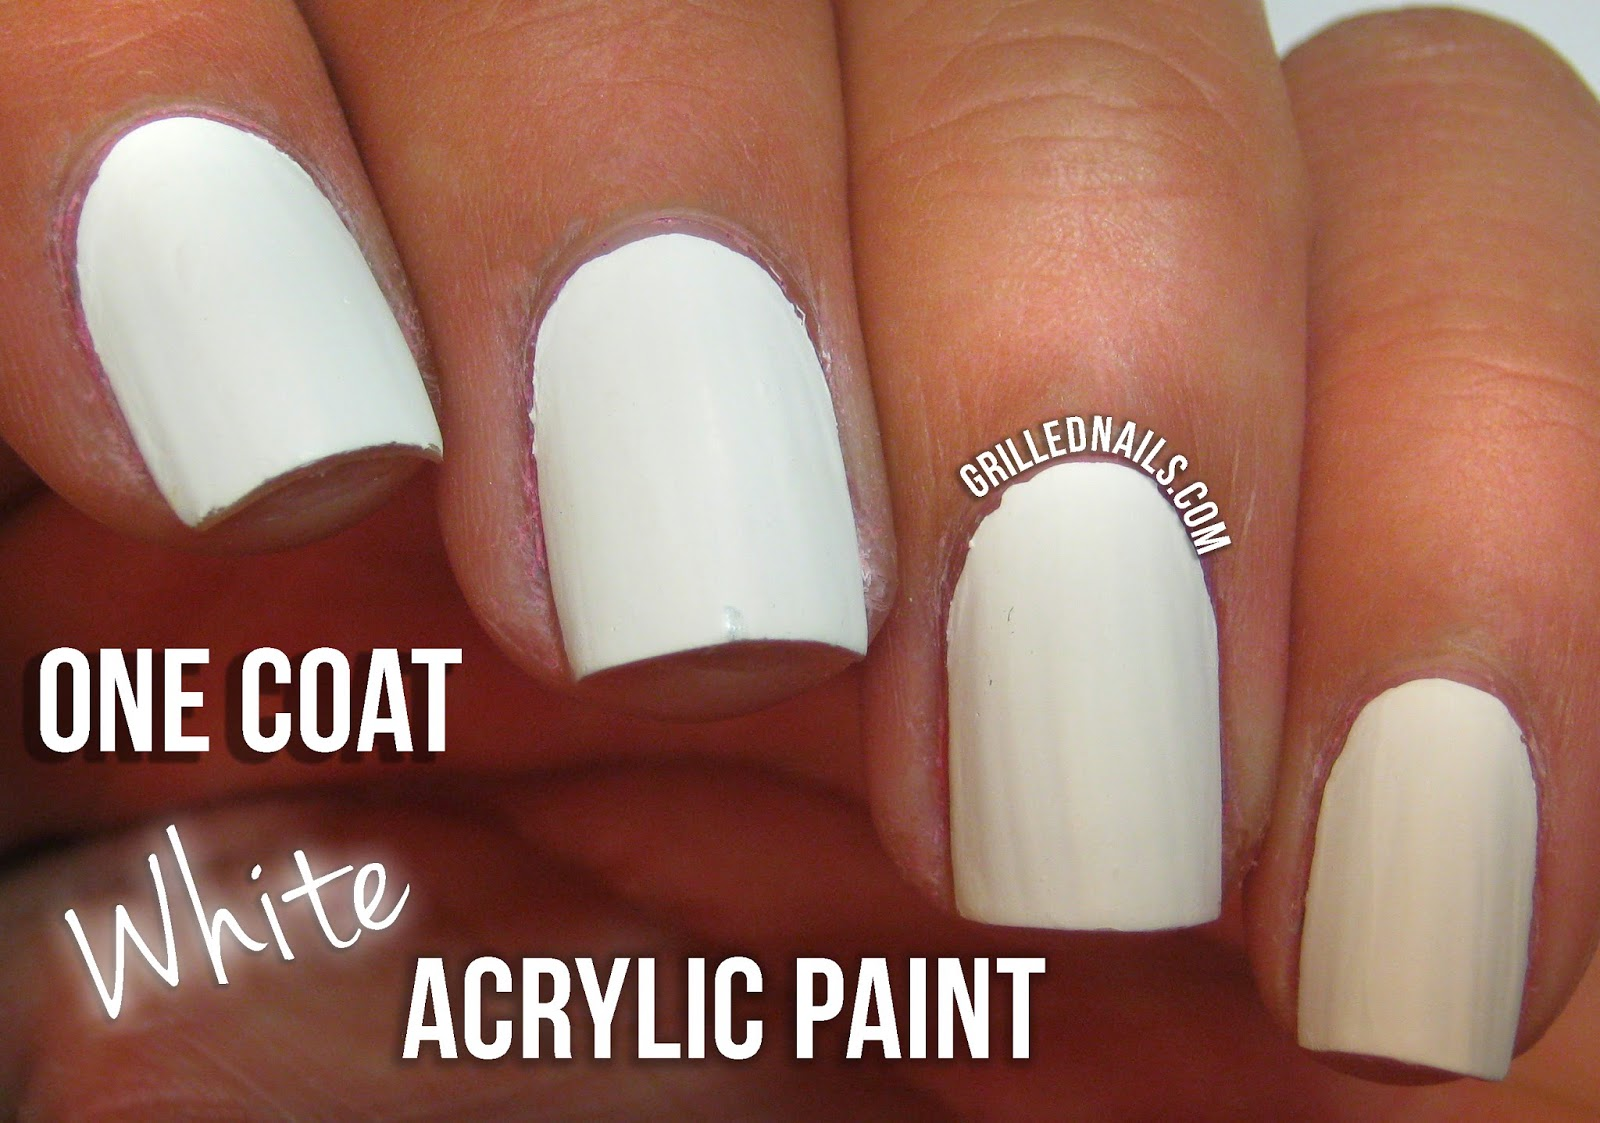 Ombre Nail Art With Acrylic Paint The Best Inspiration For Design